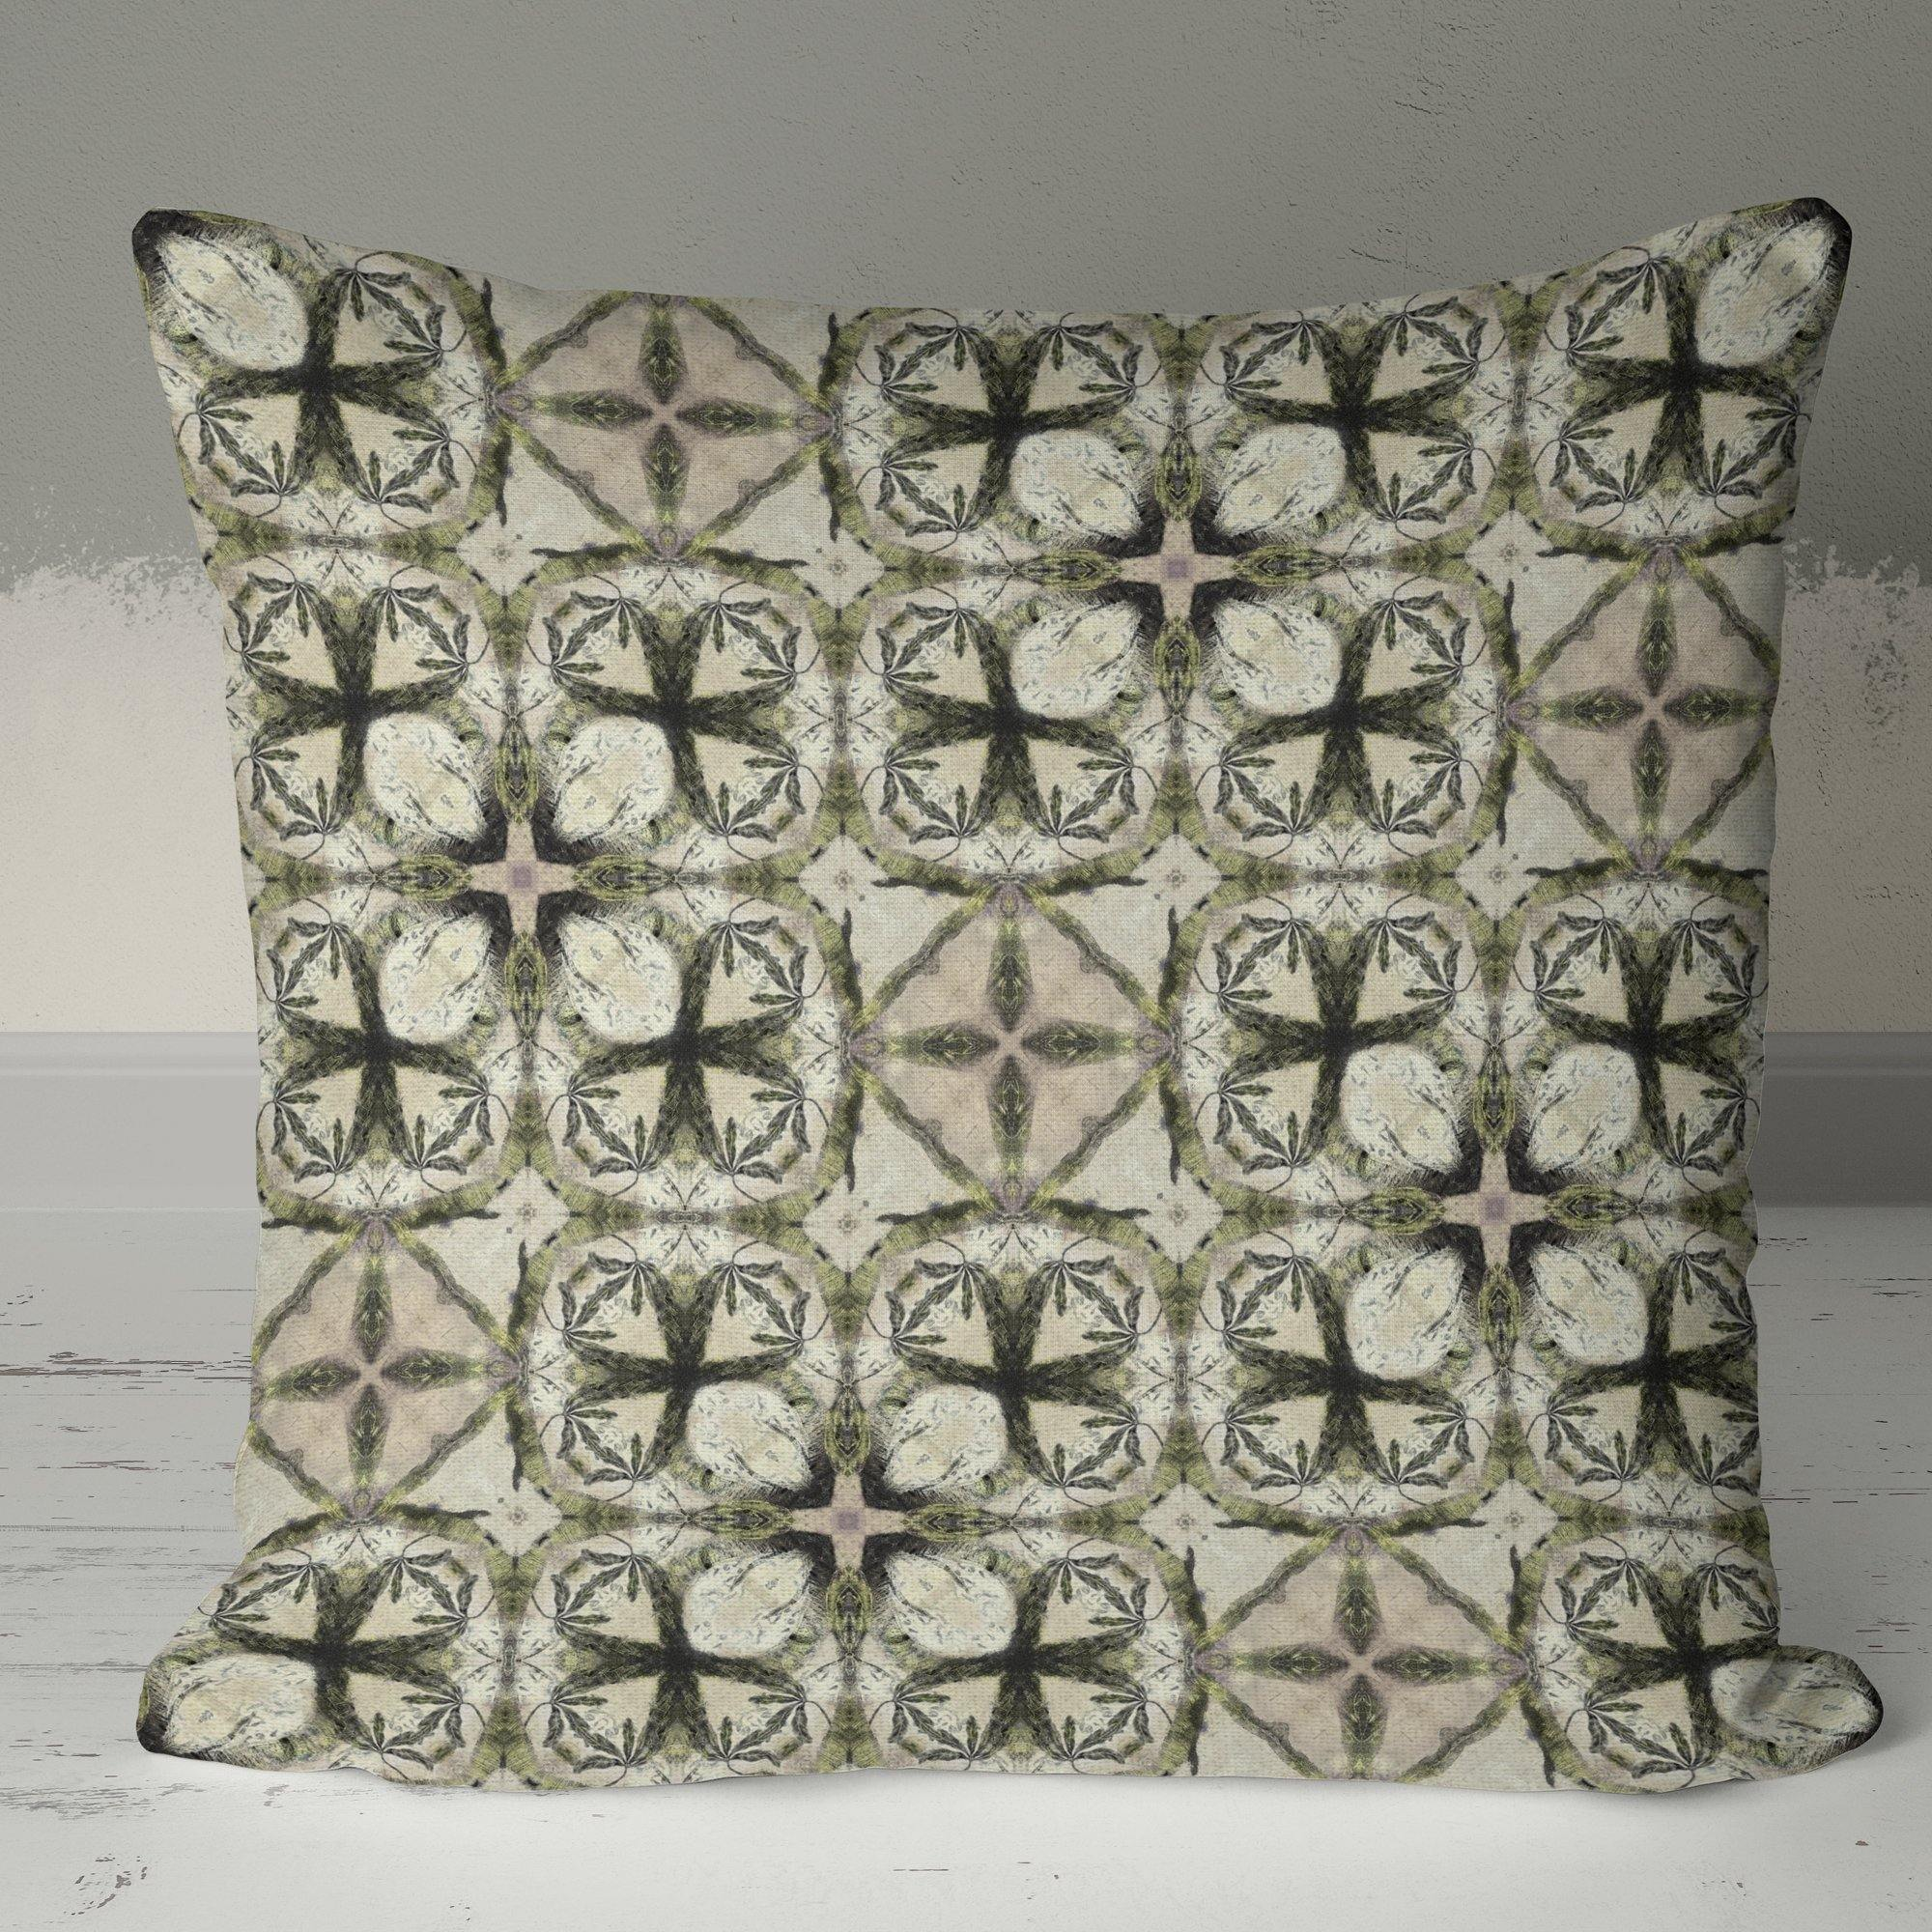 Geometric Pythagorean Cushion - The Patternologist